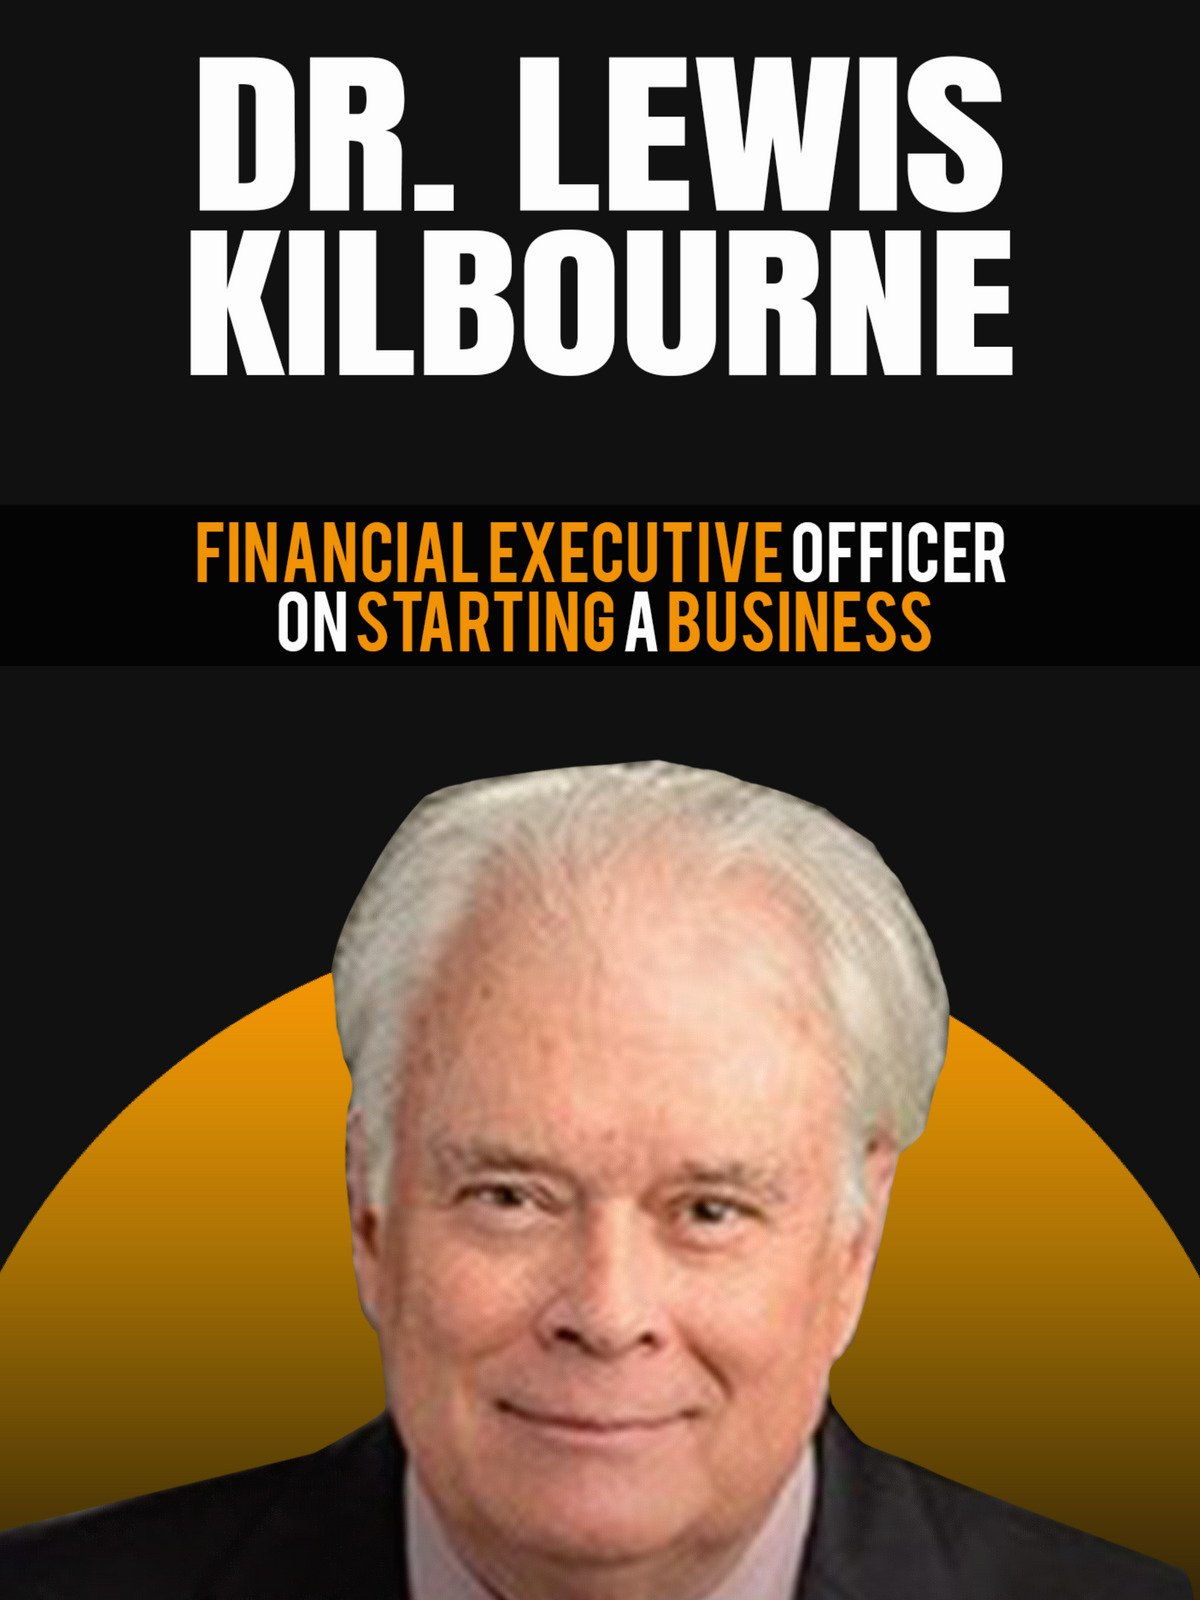 Dr. Lewis Kilbourne: Financial Executive Officer On Starting A Business